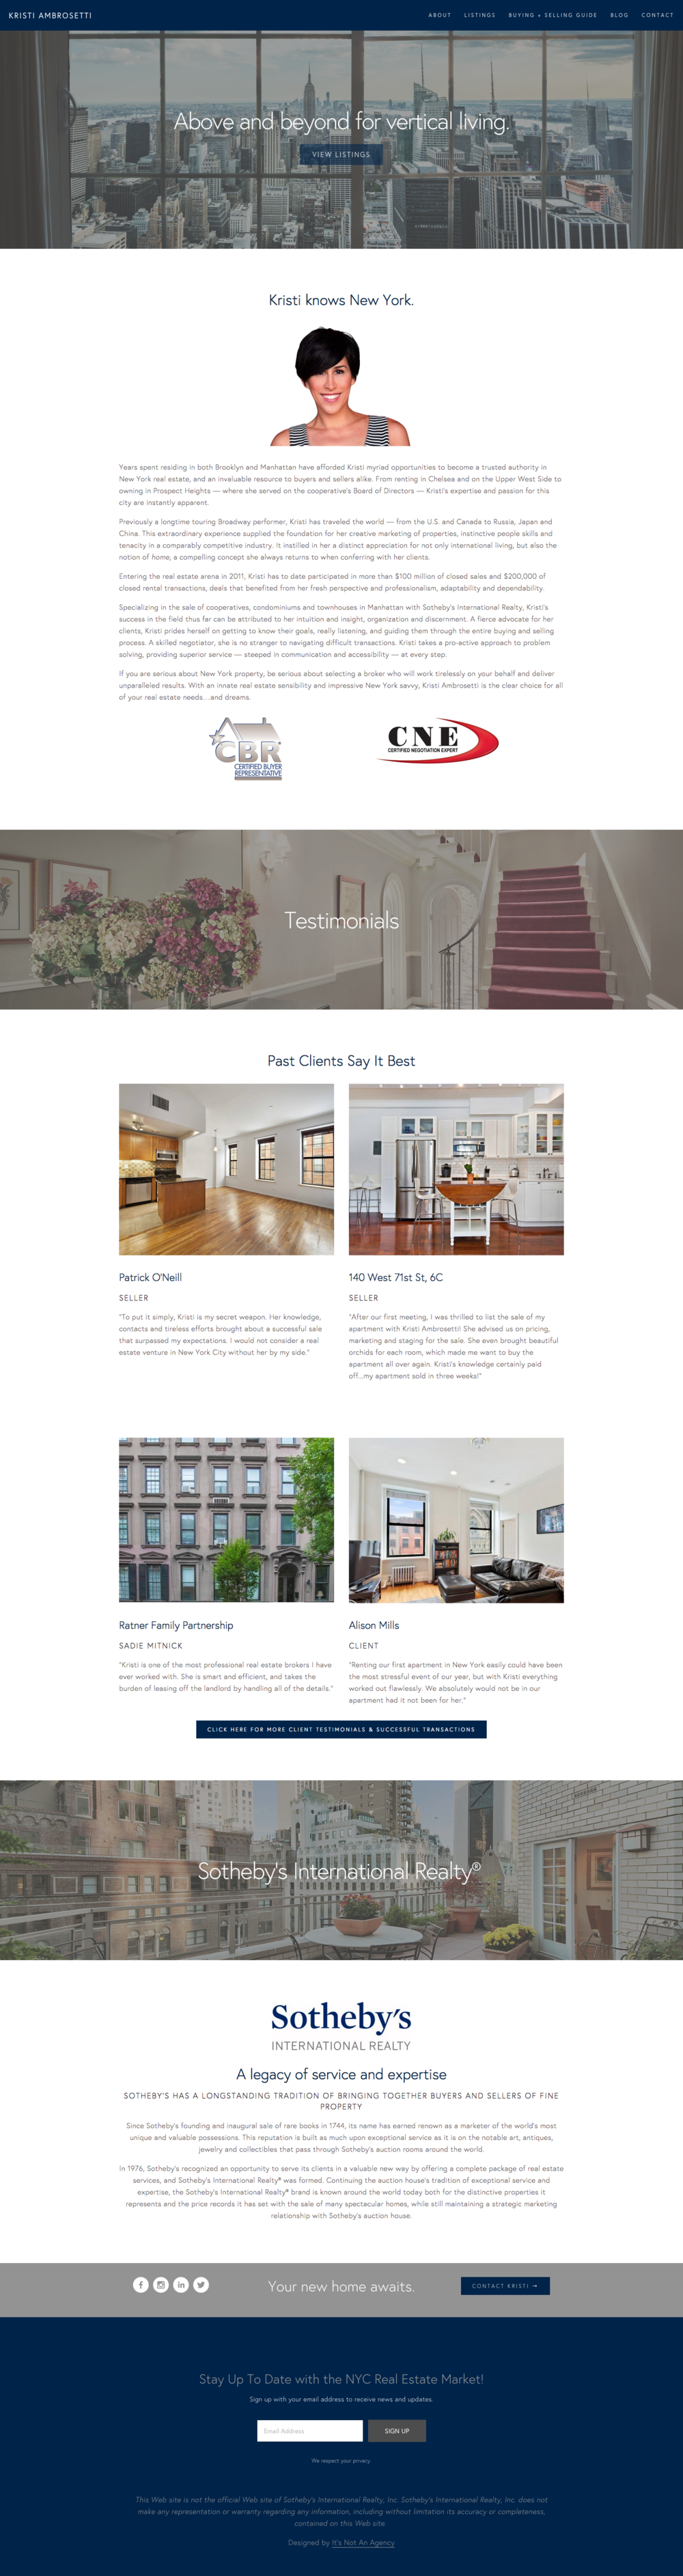 Real Estate Website_Kristi Ambrosetti3.png